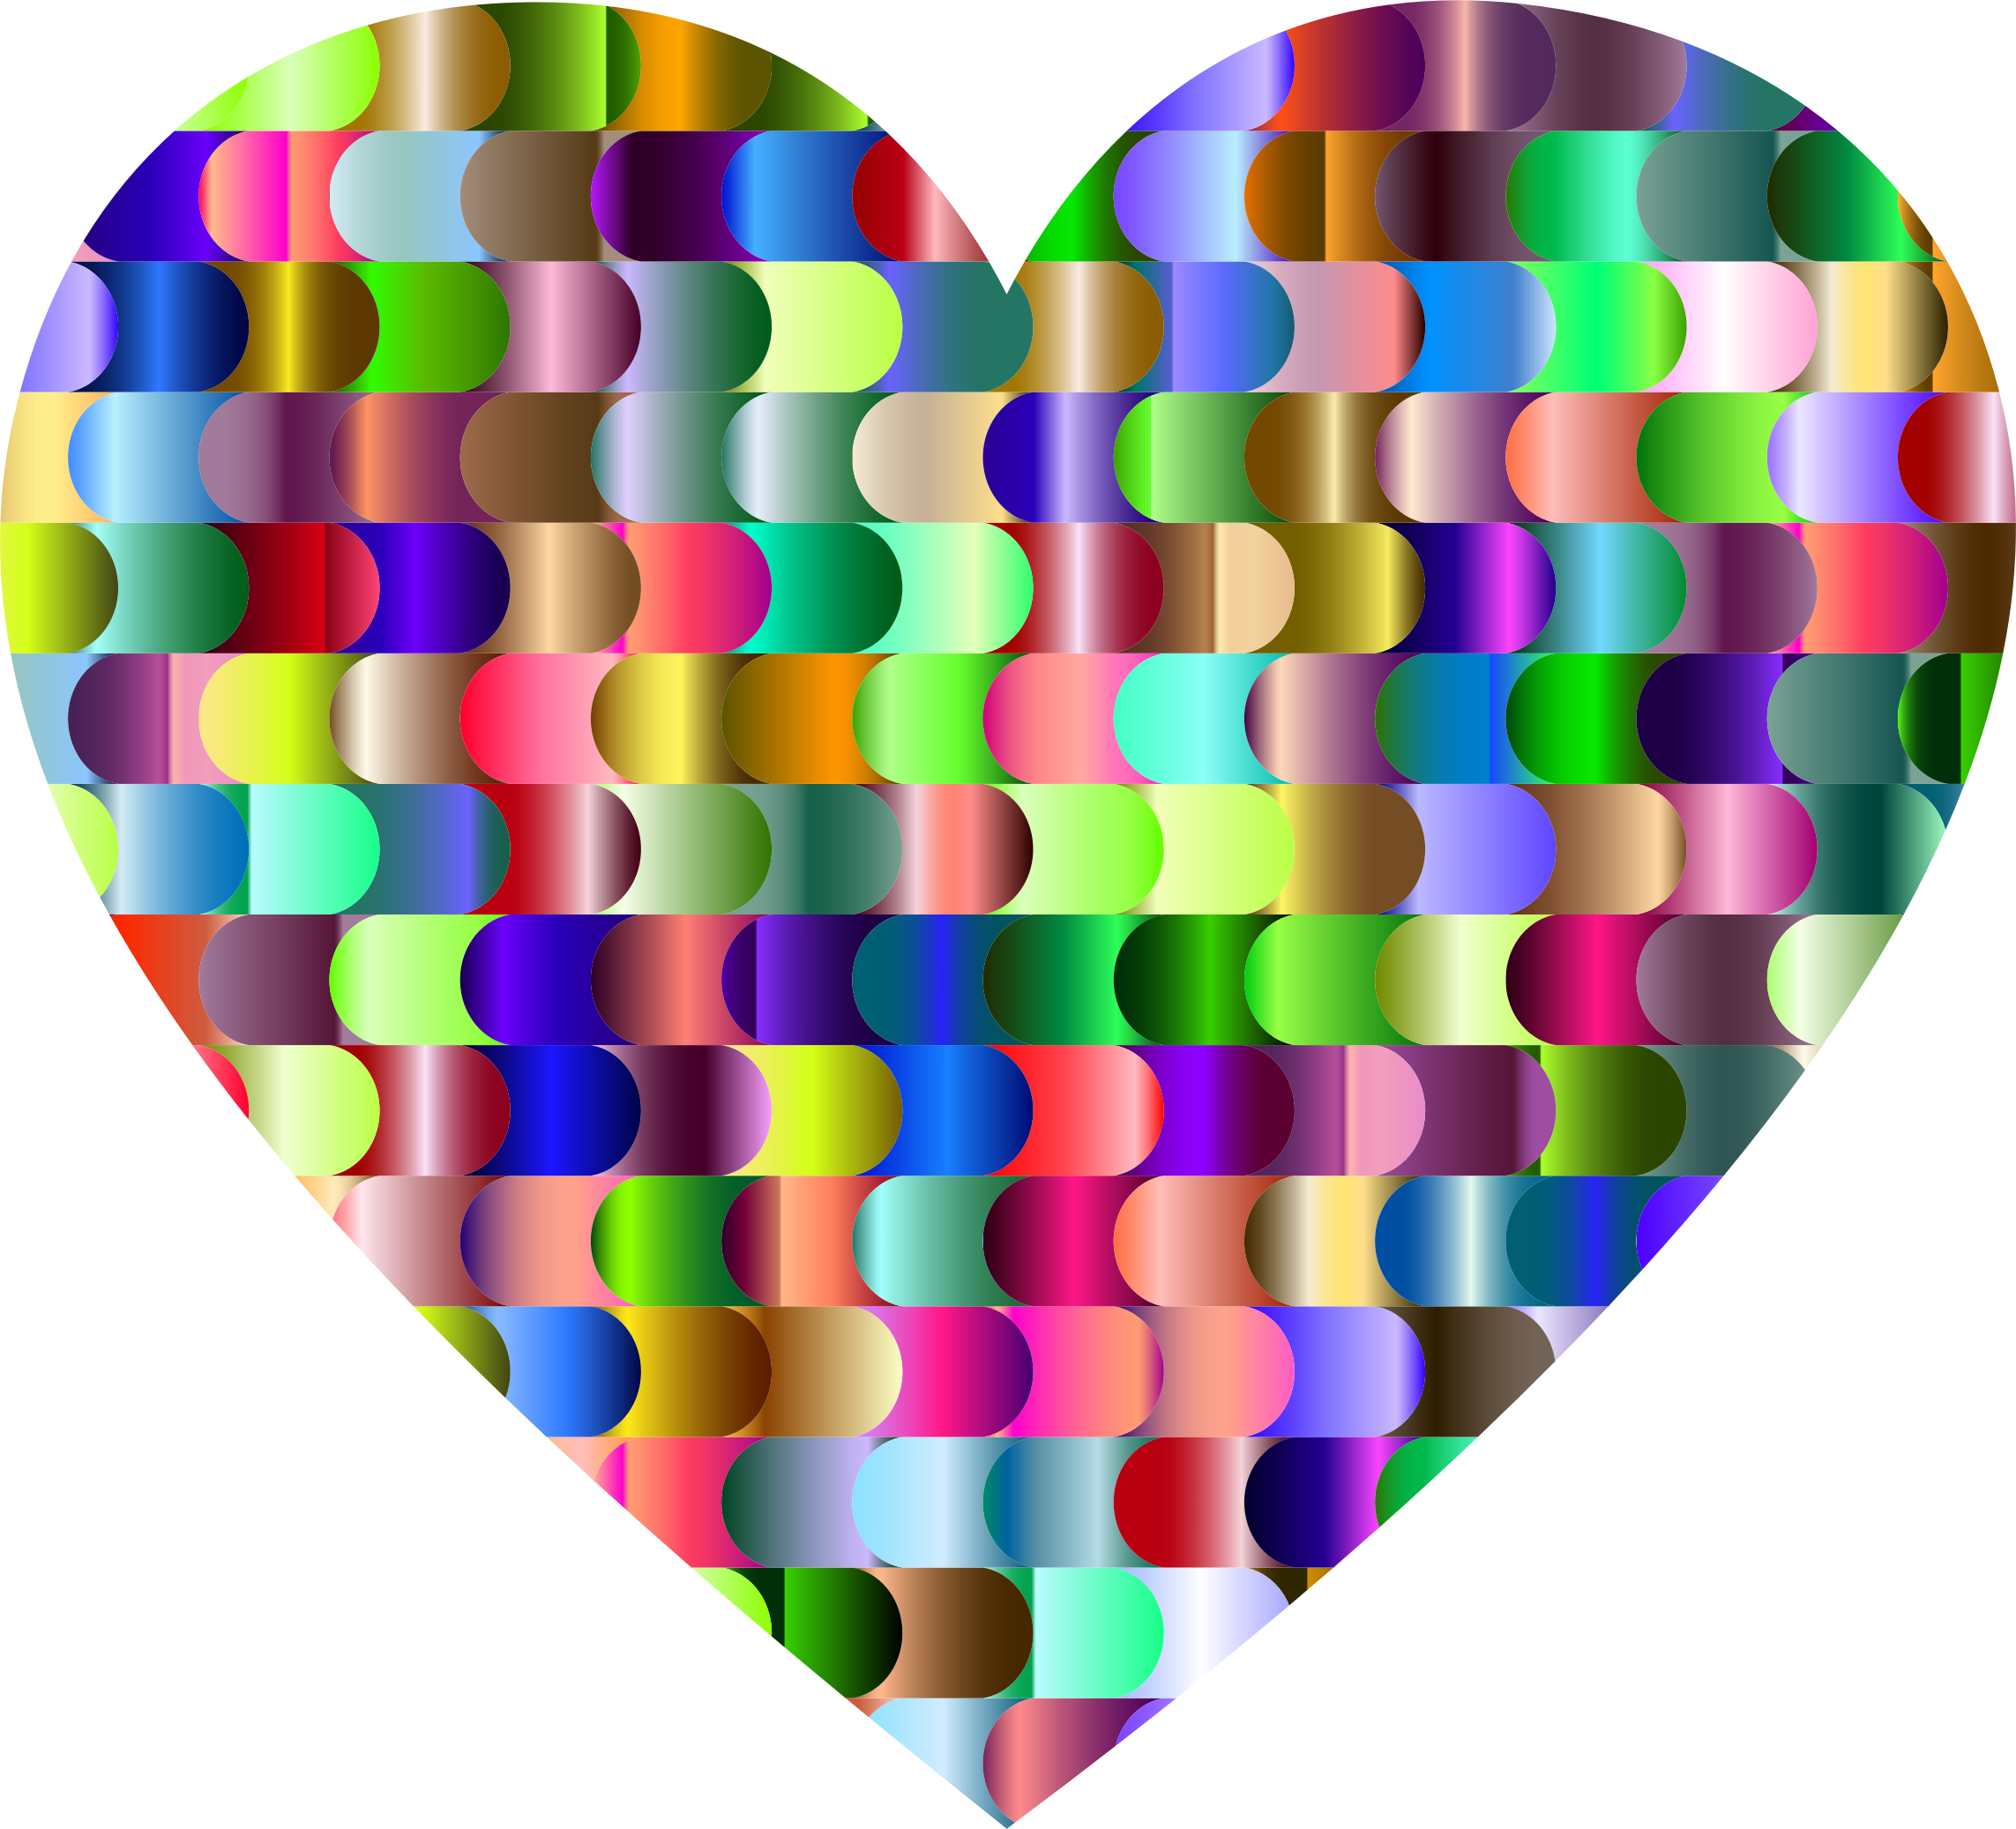 Prismatic Interlocking Waves Heart by GDJ